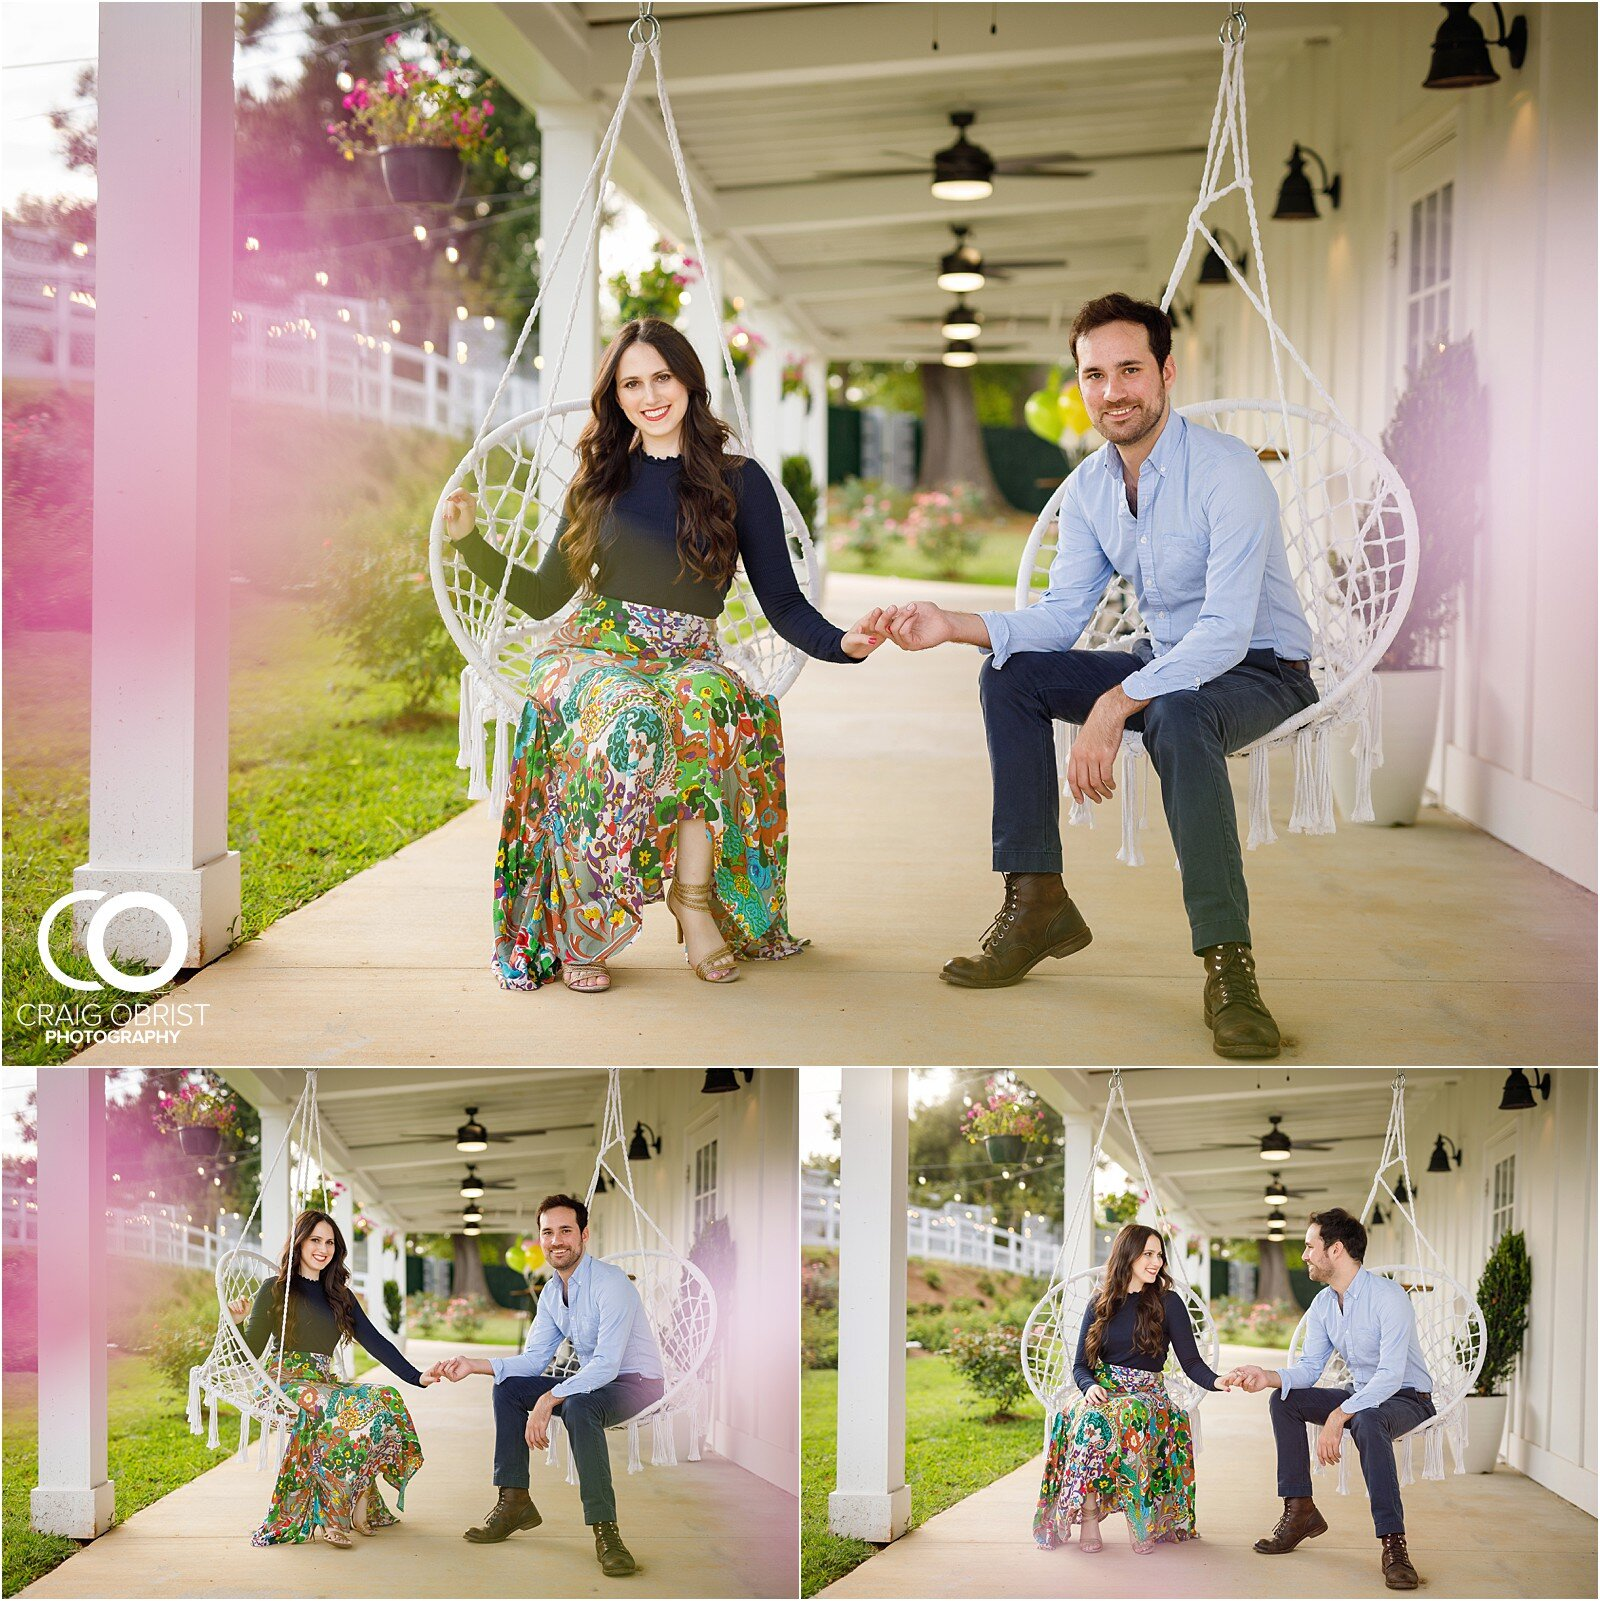 The Barn at Little River Little River Farms Engagement Wedding Portraits Fairy Tale_0010.jpg